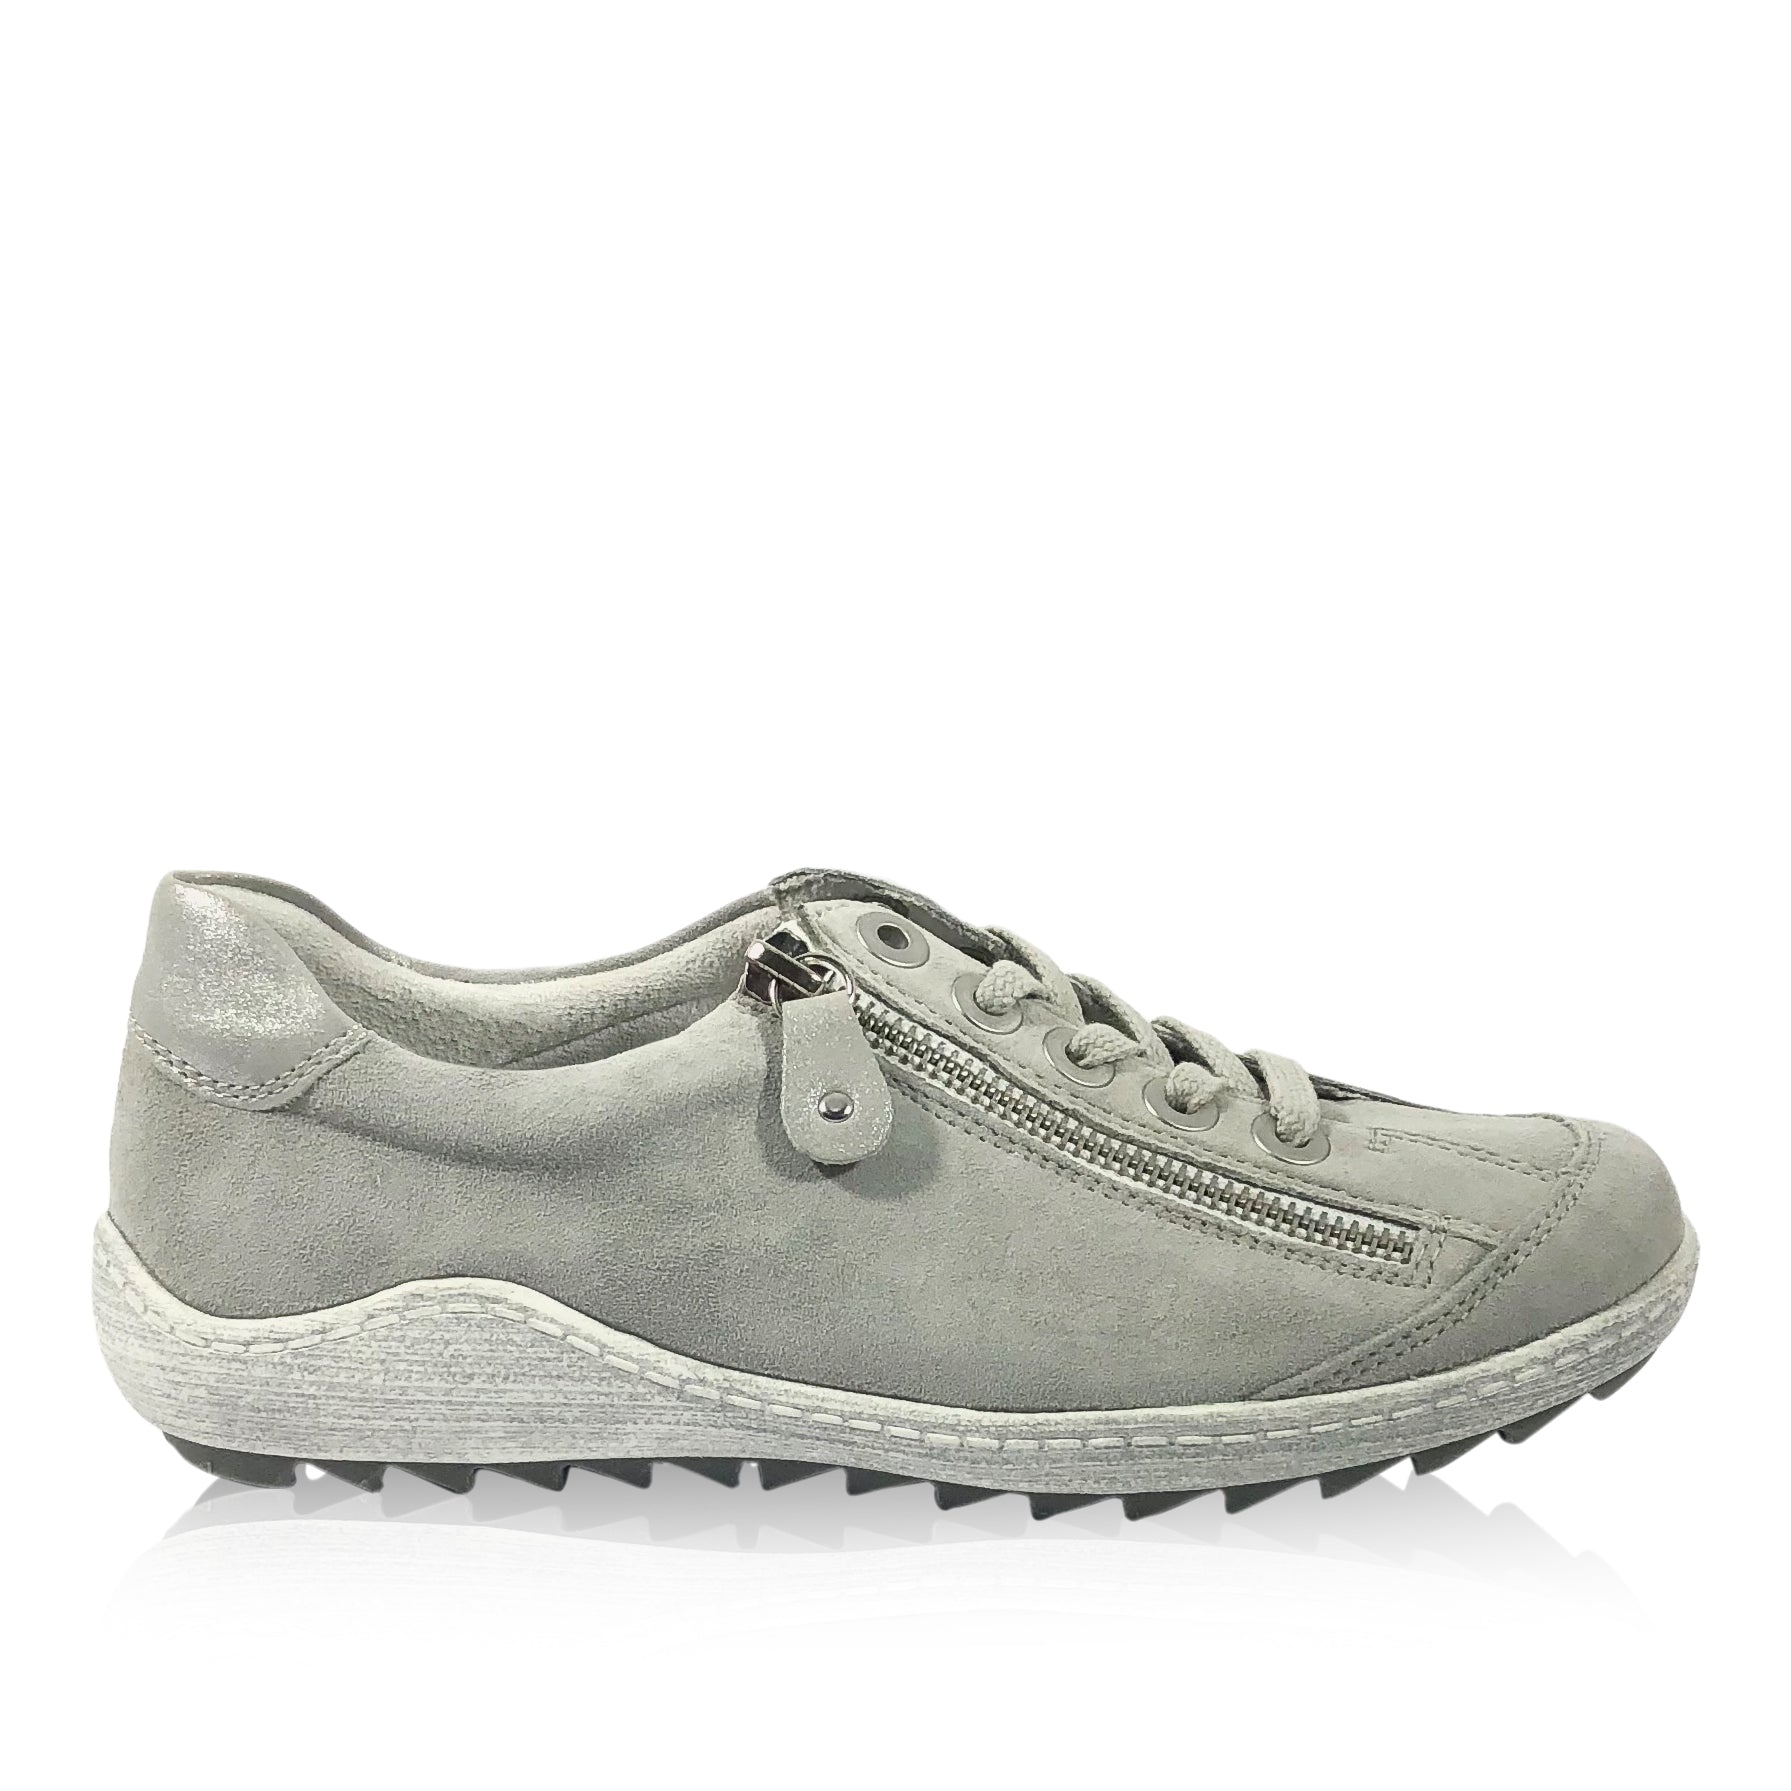 Remonte by Rieker - R1402 - Light Grey